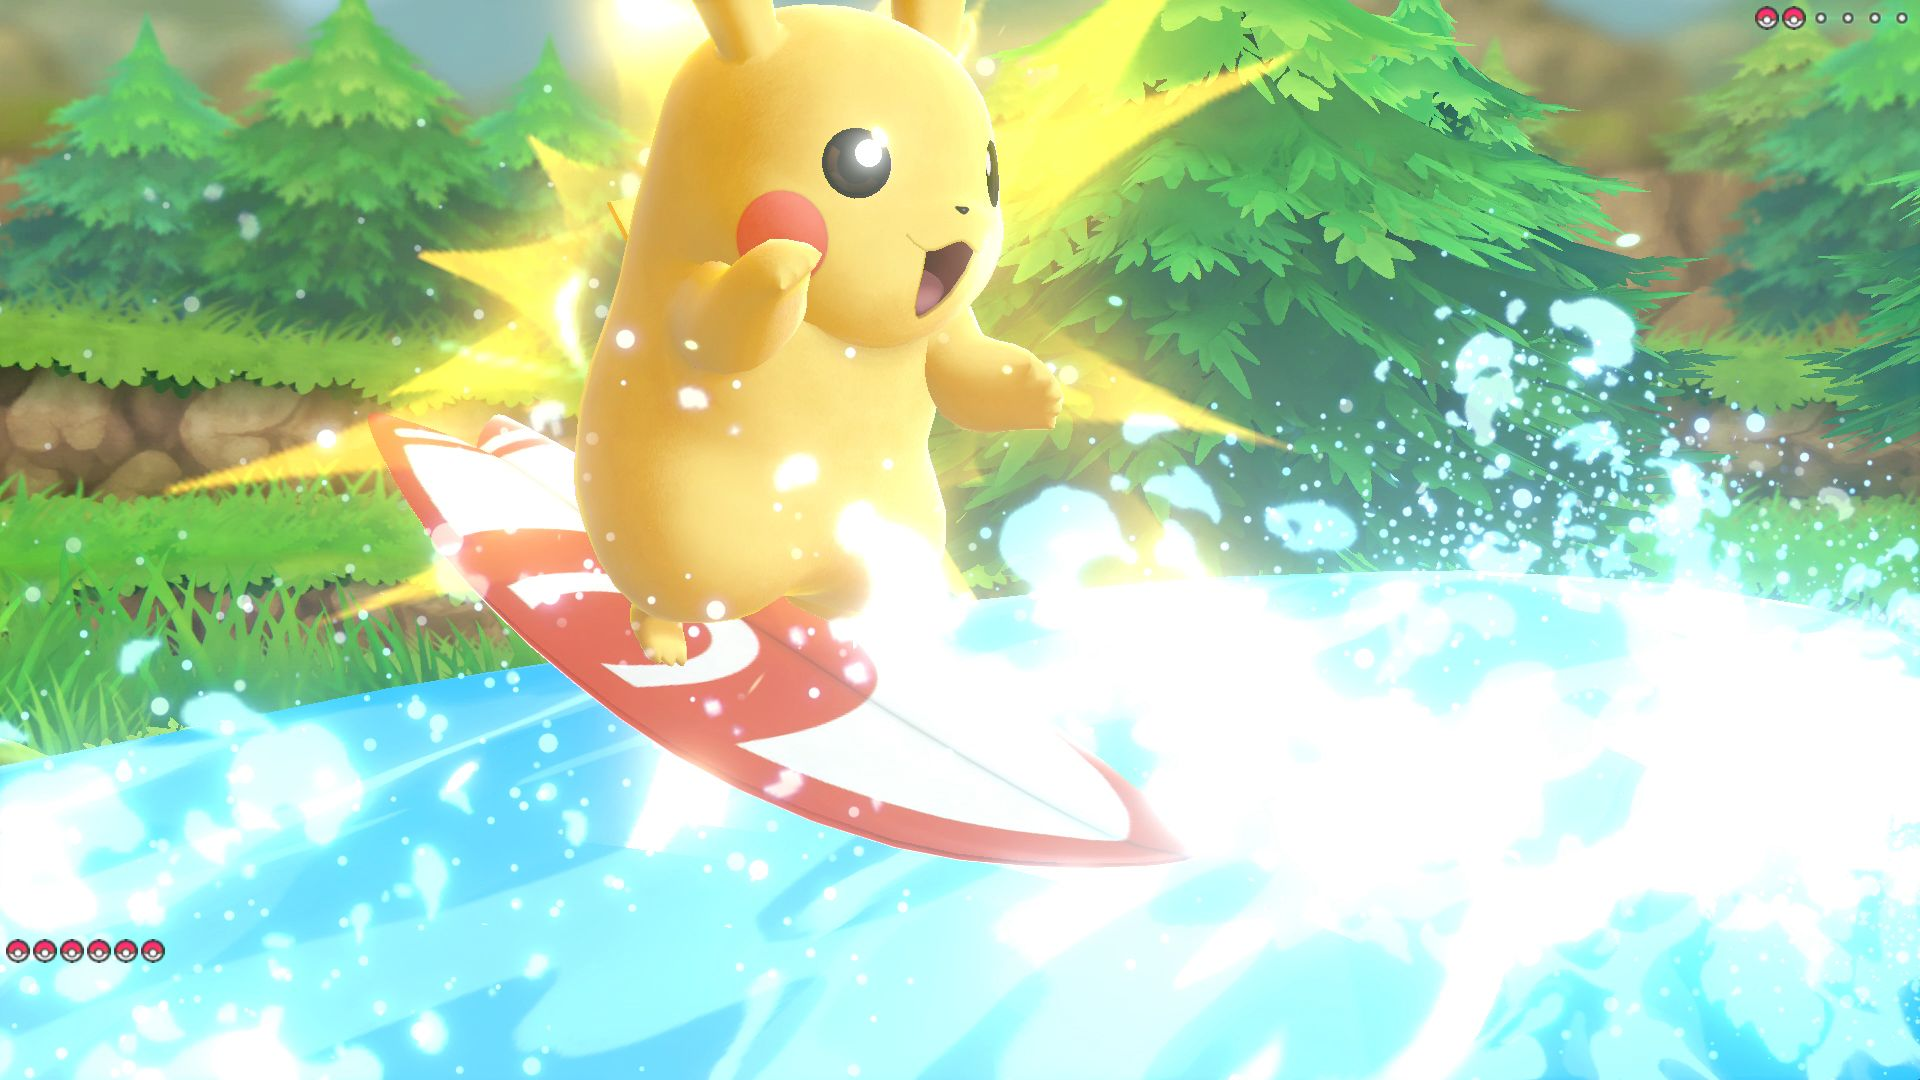 Surfing in Pokémon: Let's Go, Pikachu! and Let's Go, Eevee!